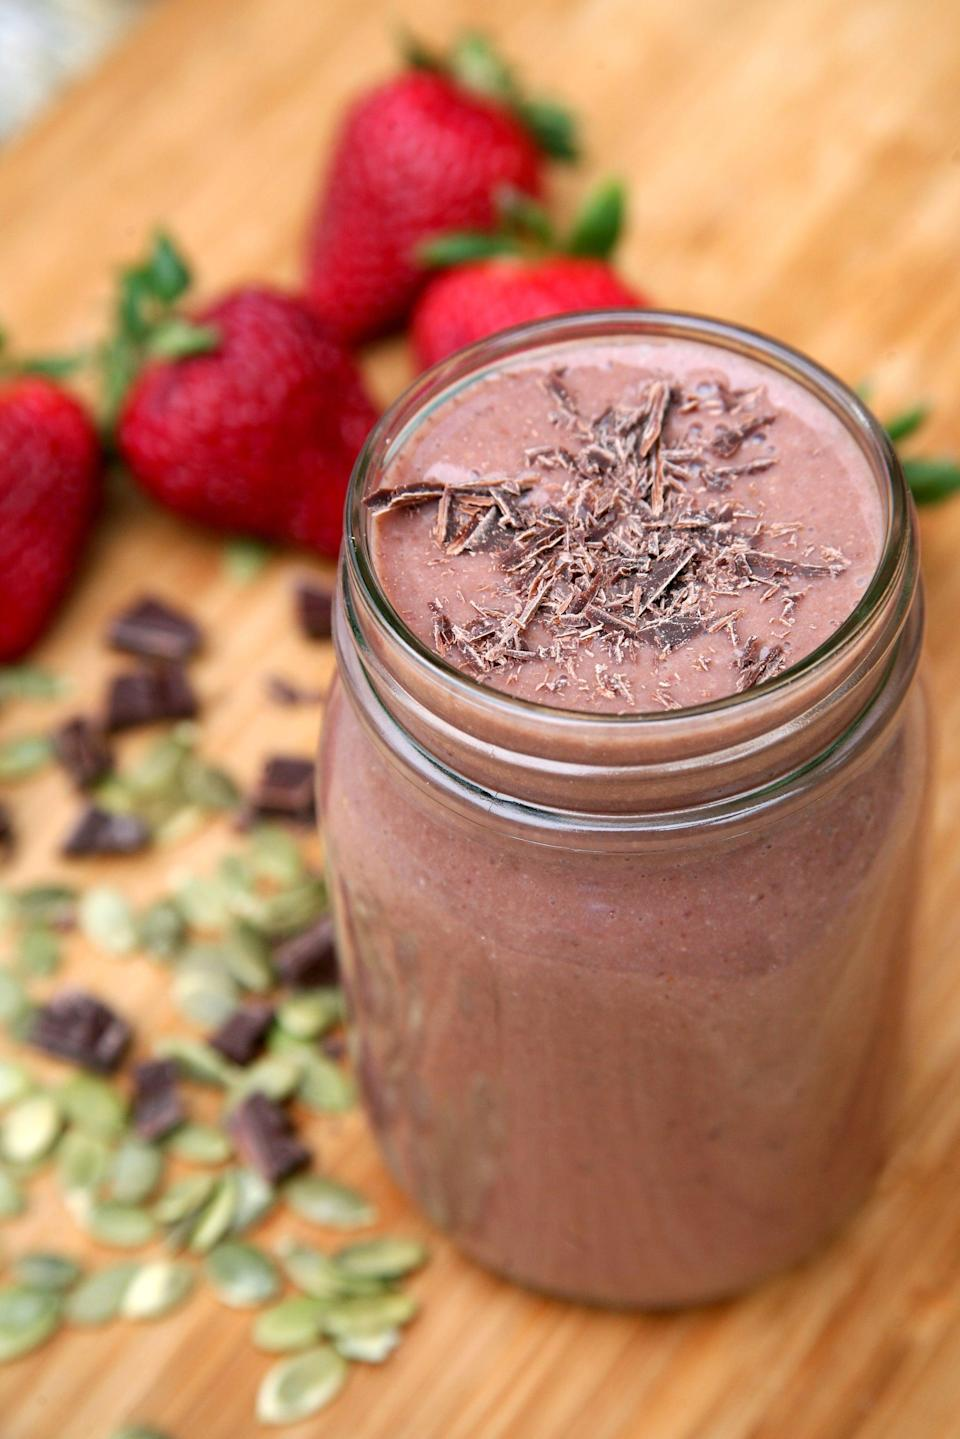 "<p>For Scorpio's determined and dynamic personality, they'll love this passionately flavored smoothie made with strawberries, peaches, chocolate, and pumpkin seeds. </p> <p><strong>Get the recipe</strong>: <a href=""https://www.popsugar.com/fitness/Smoothie-Better-Sex-37288023"" class=""link rapid-noclick-resp"" rel=""nofollow noopener"" target=""_blank"" data-ylk=""slk:chocolate strawberry smoothie"">chocolate strawberry smoothie</a></p>"